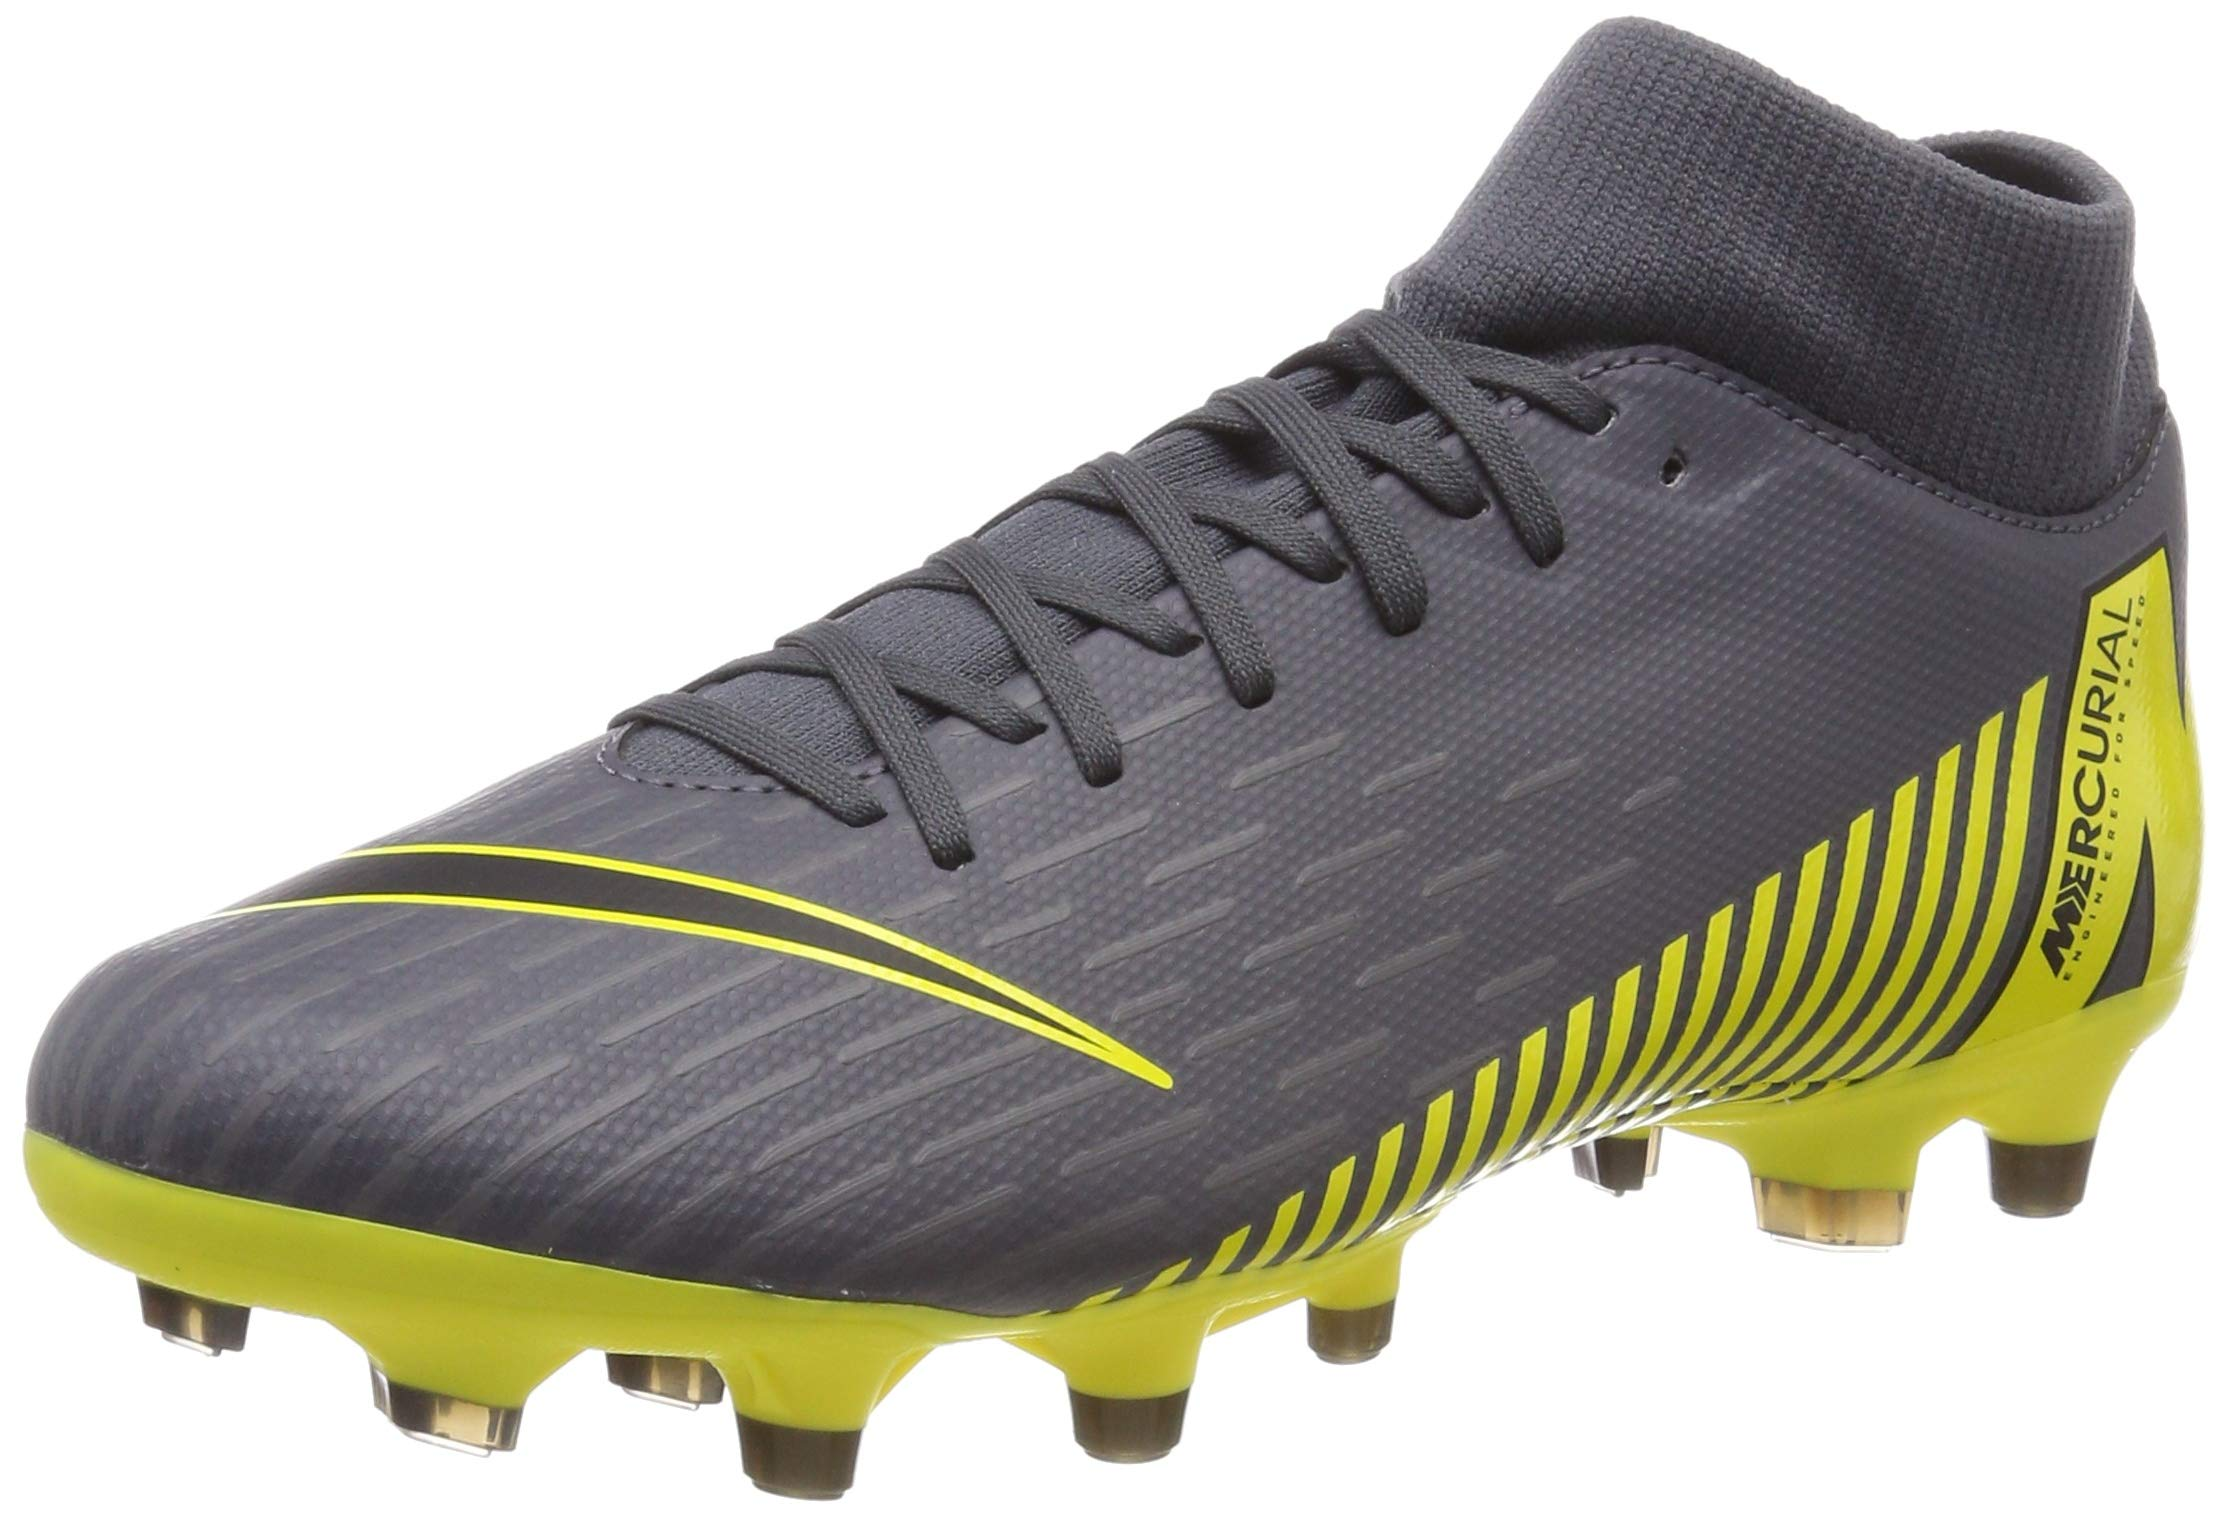 425ecaa3dd3 Nike Mercurial Superfly 9.5 Top Deals   Lowest Price